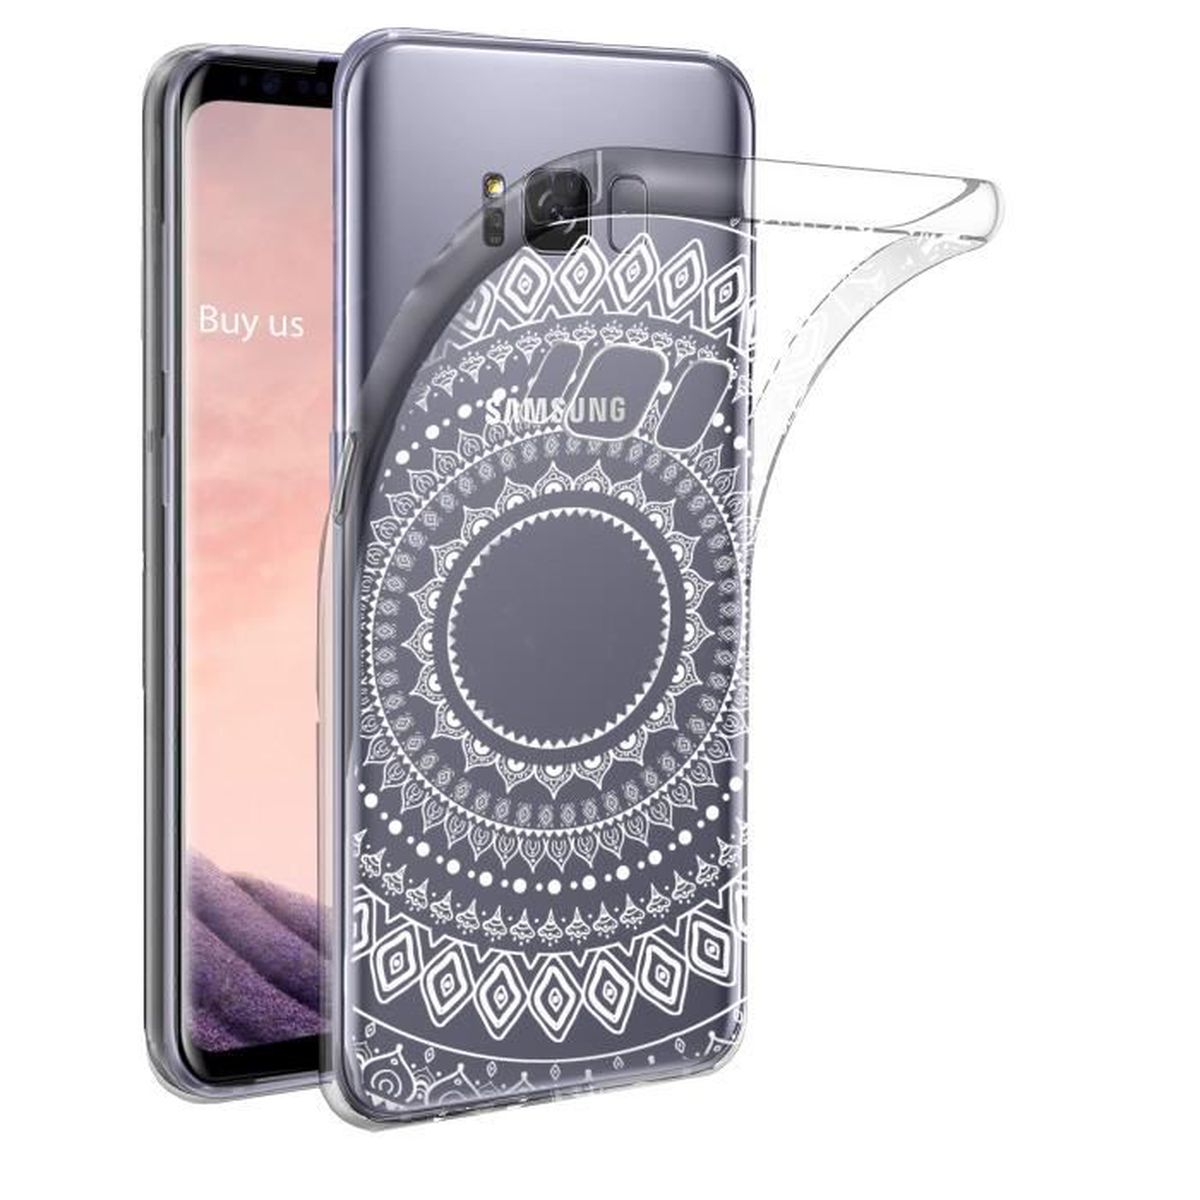 coque samsung galaxy s8 plus motif